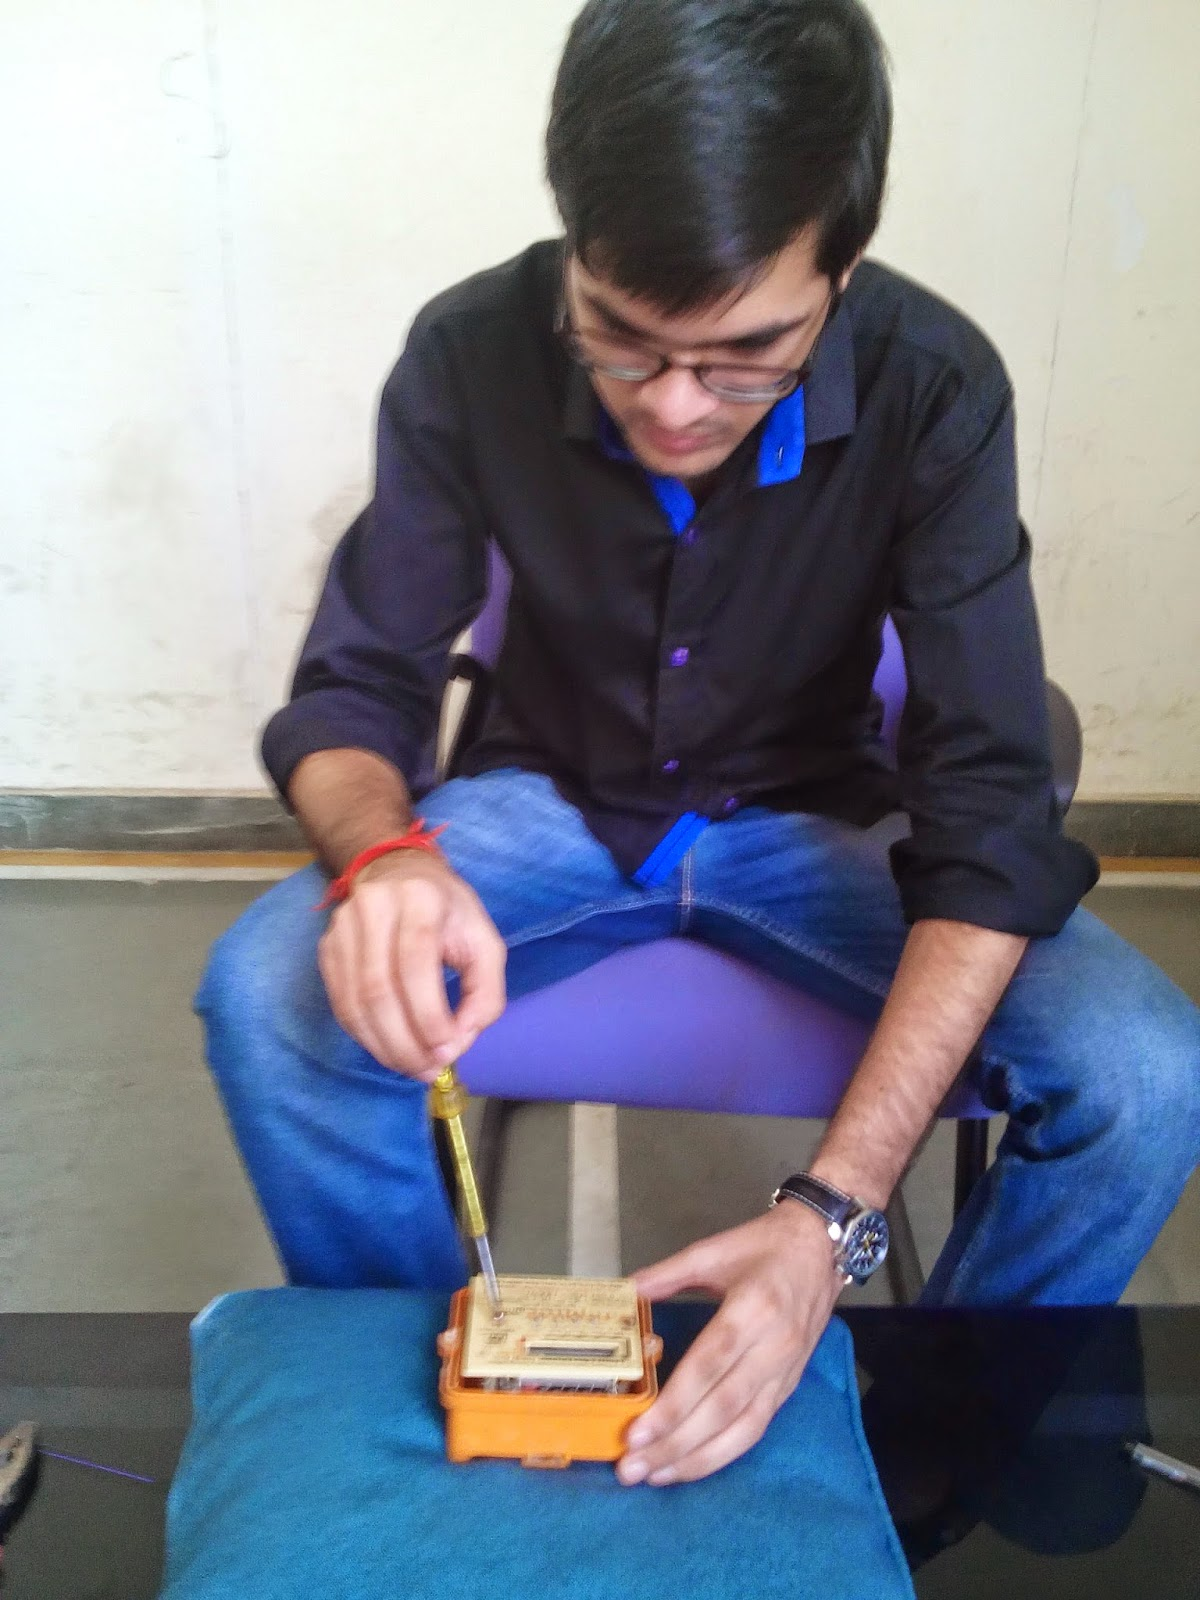 AC 1-PHASE 2-WIRE ELECTRONIC ENERGY METER - BY: Harish